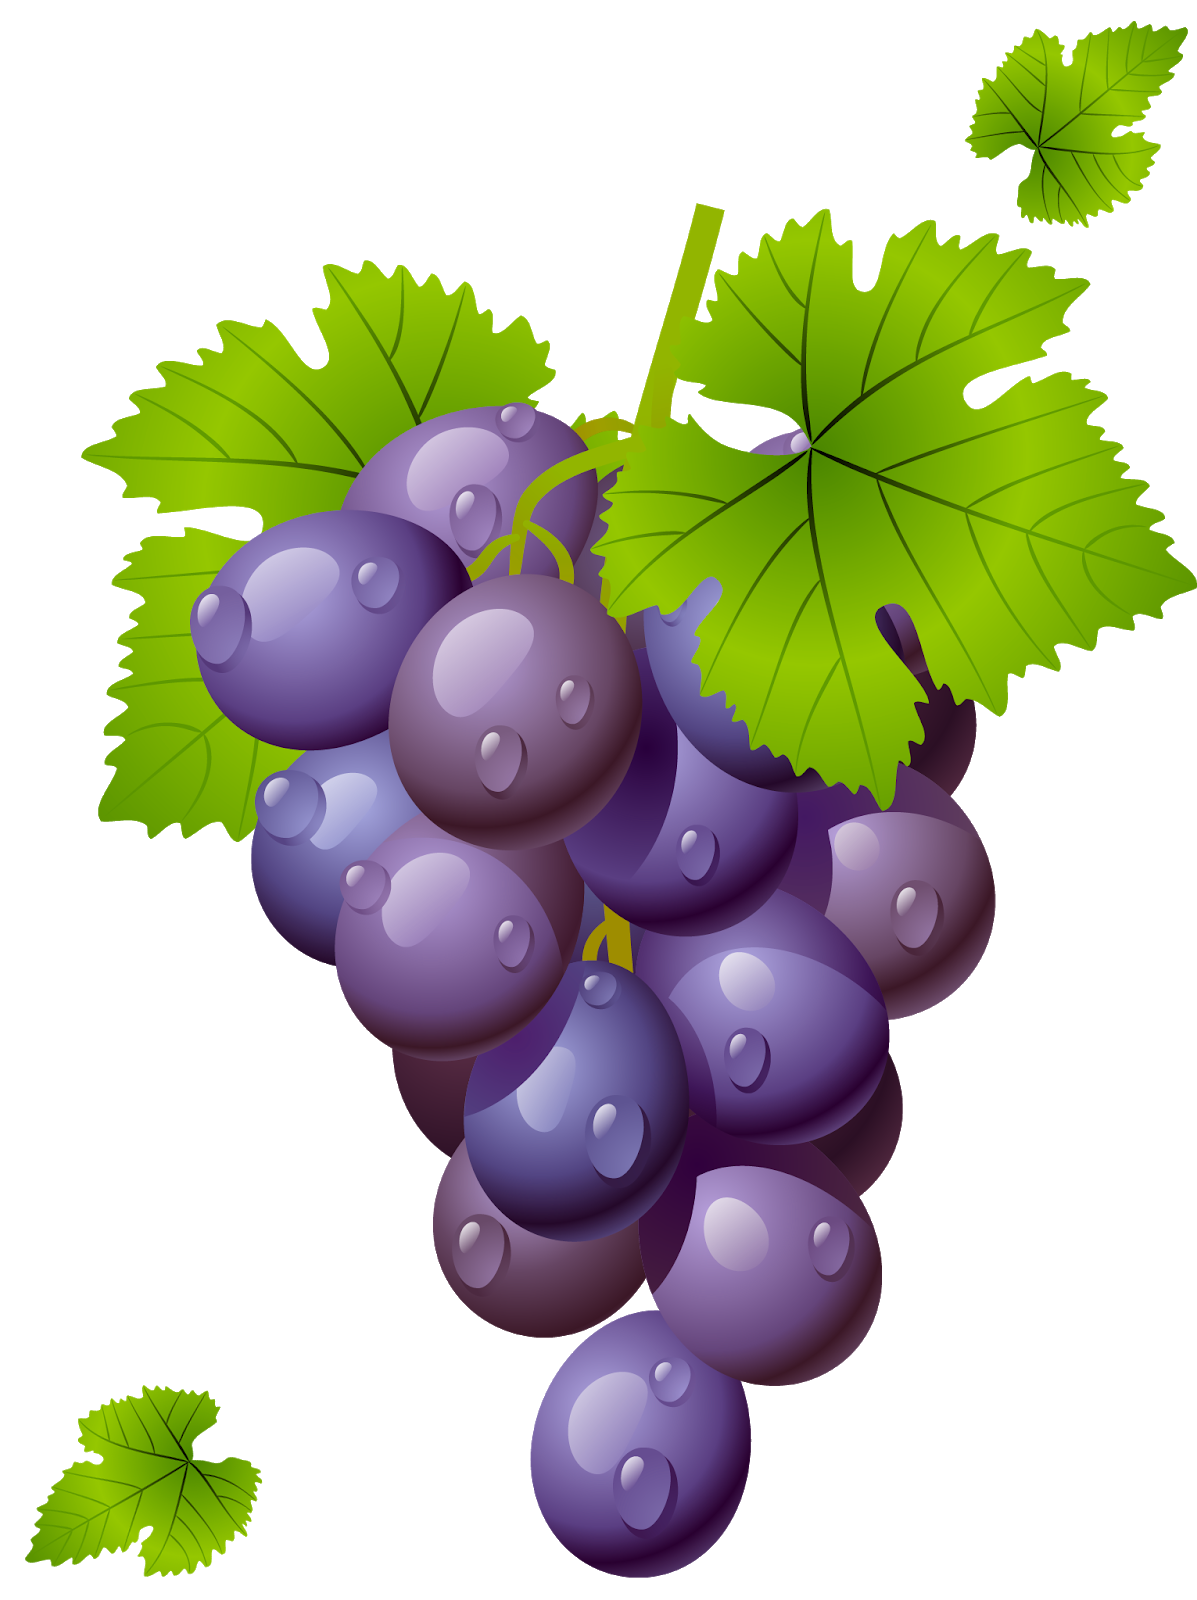 Grape clipart fruit individual. We get it bro